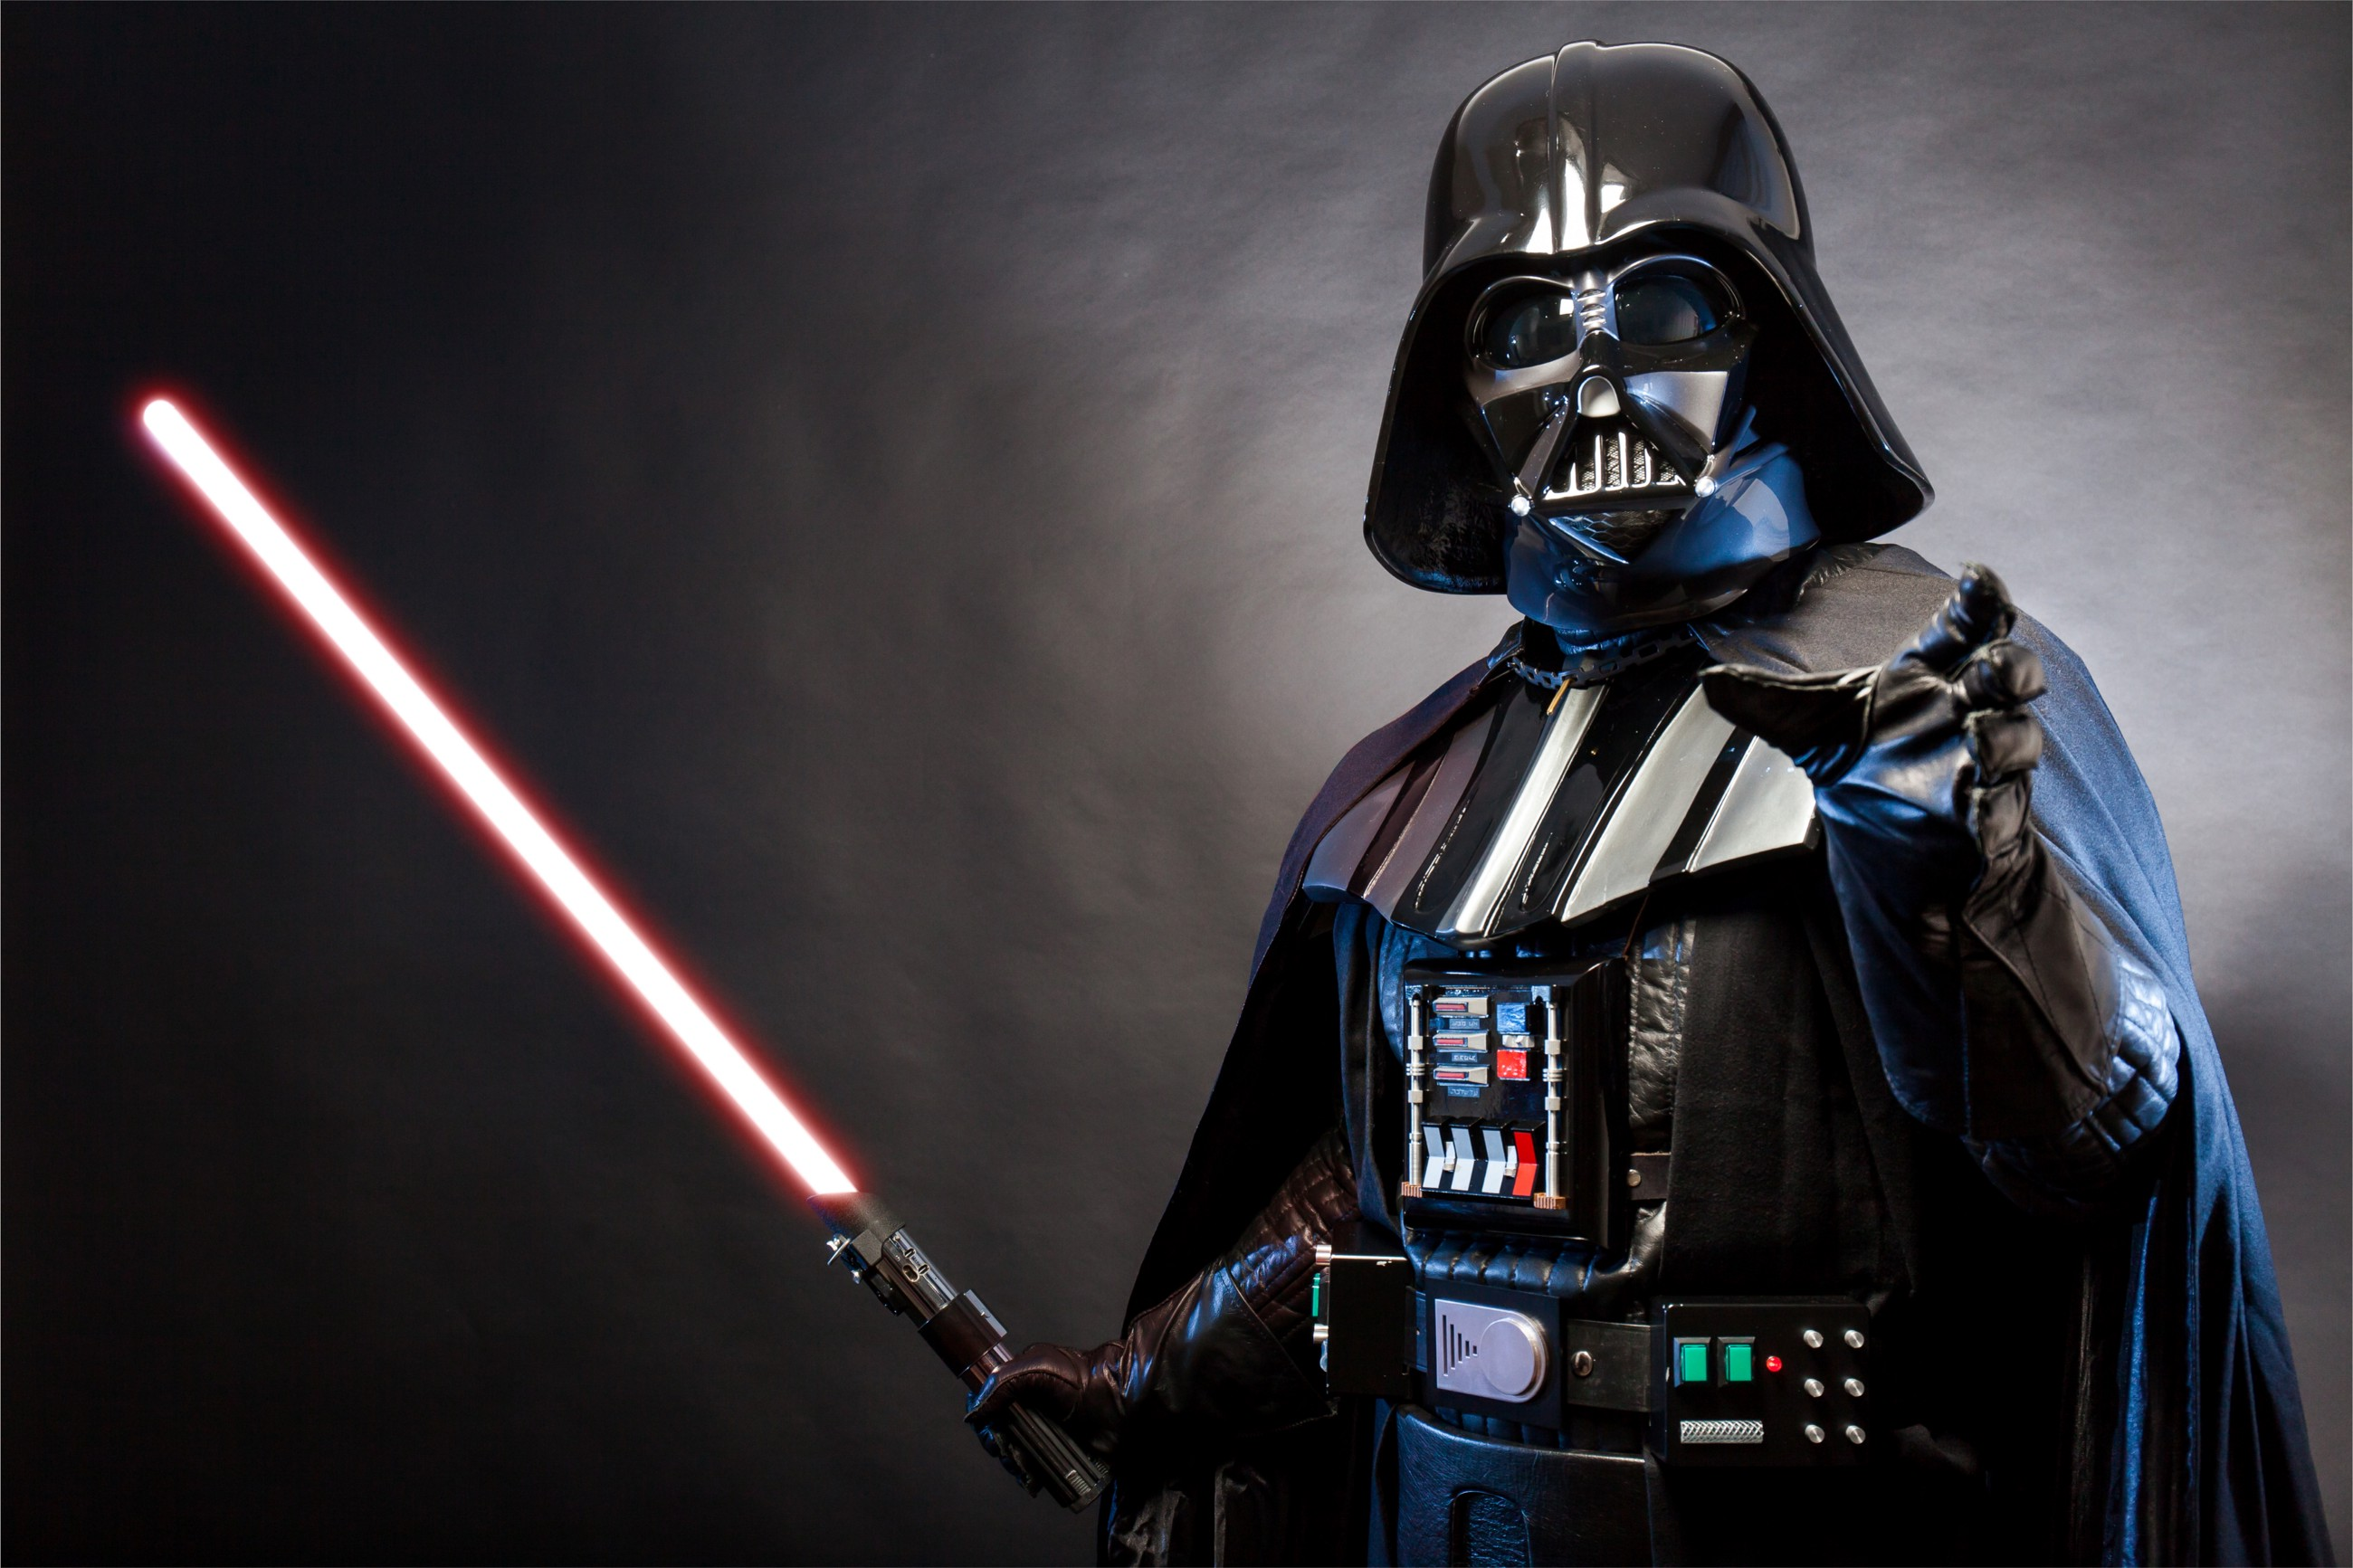 /the-empire-strikes-back-with-a-coordinated-war-on-crypto-bdd84fd2f854 feature image